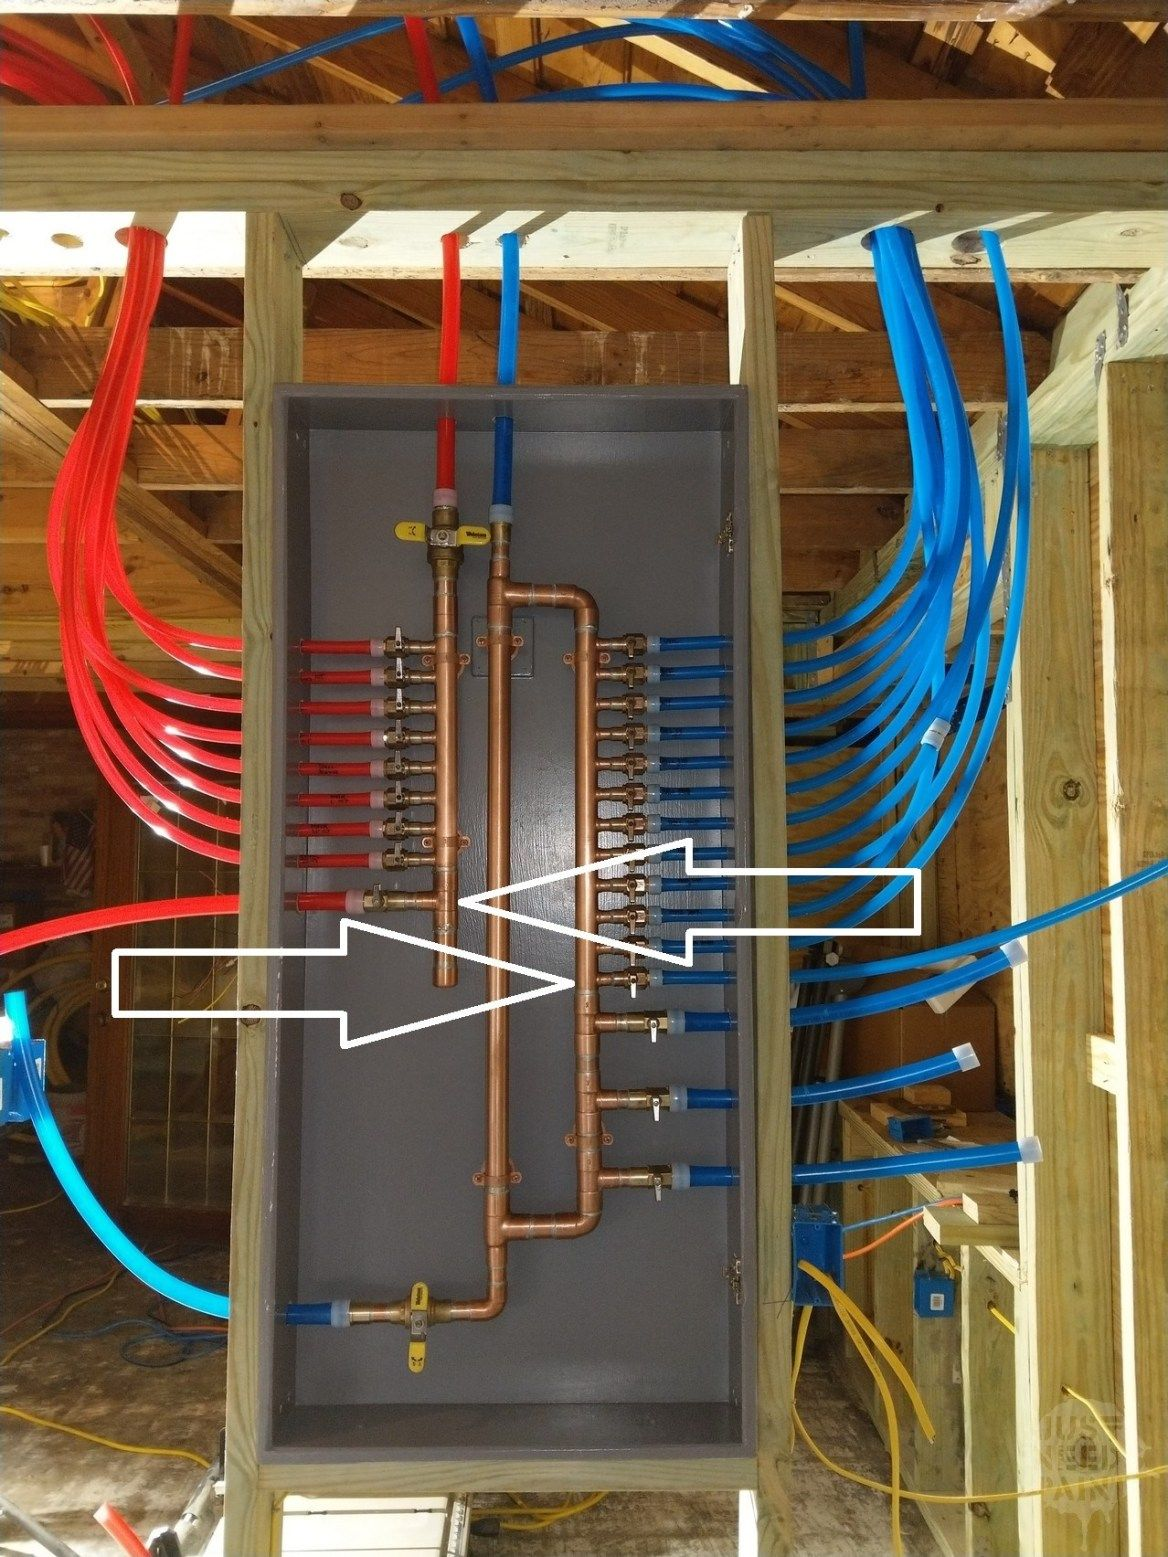 How to build a pex manifold a stepbystep guide just